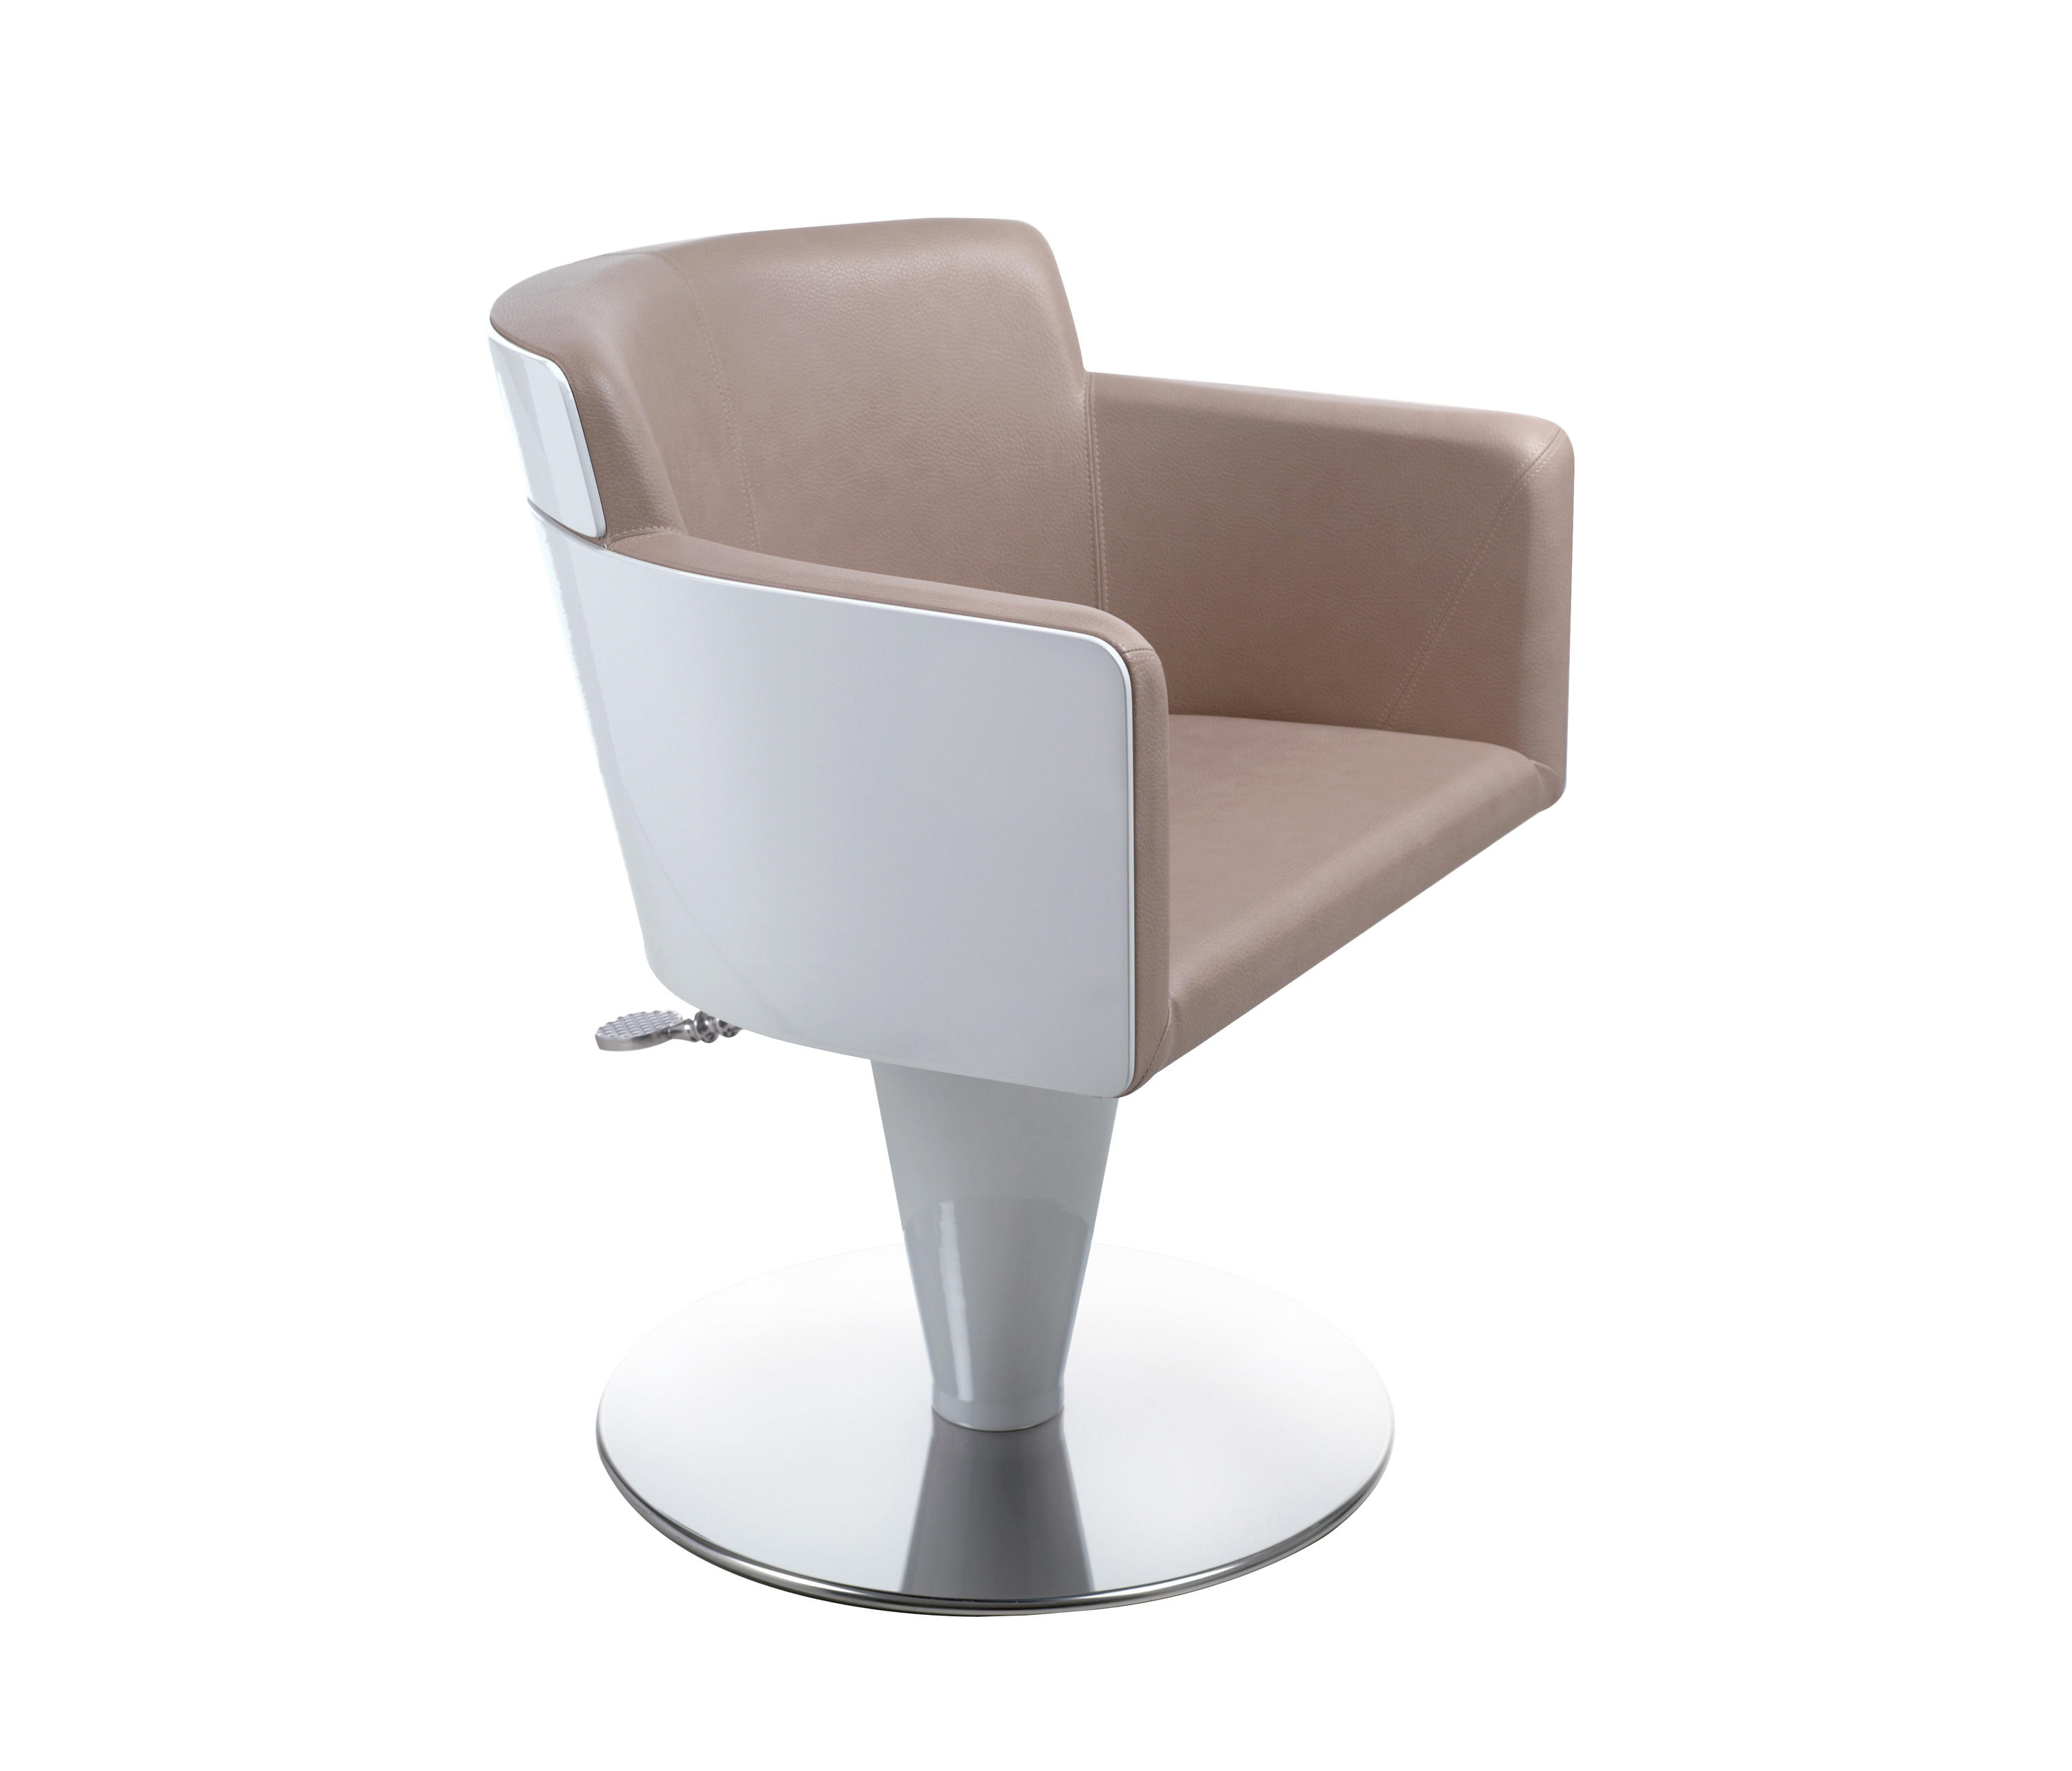 AIDA | MG BROSS STYLING SALON CHAIR - Barber chairs from GAMMA ...